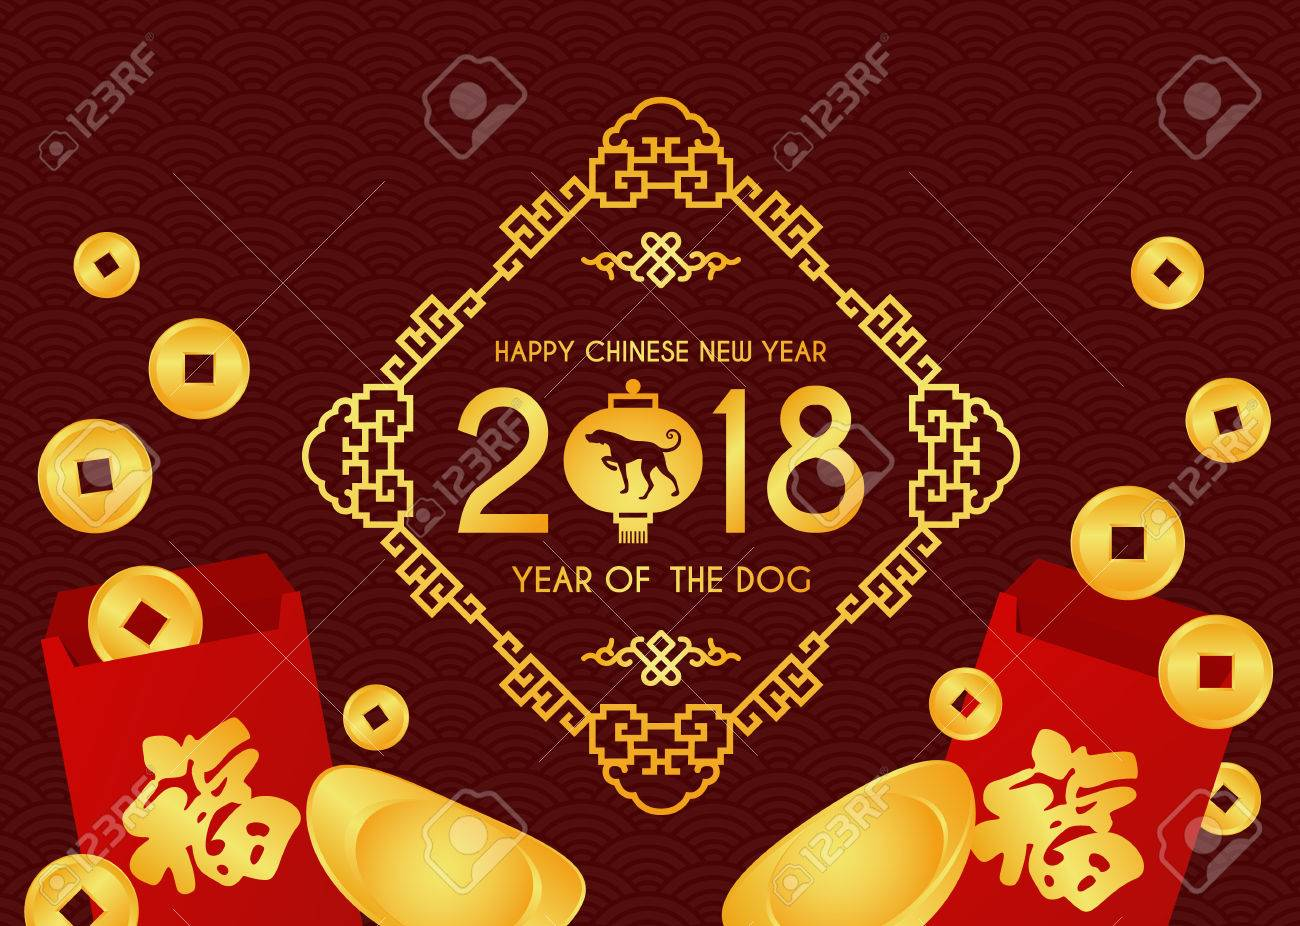 Happy chinese new year 2018 card with dog in lantern and chiness happy chinese new year 2018 card with dog in lantern and chiness frame and chinese angpao kristyandbryce Choice Image